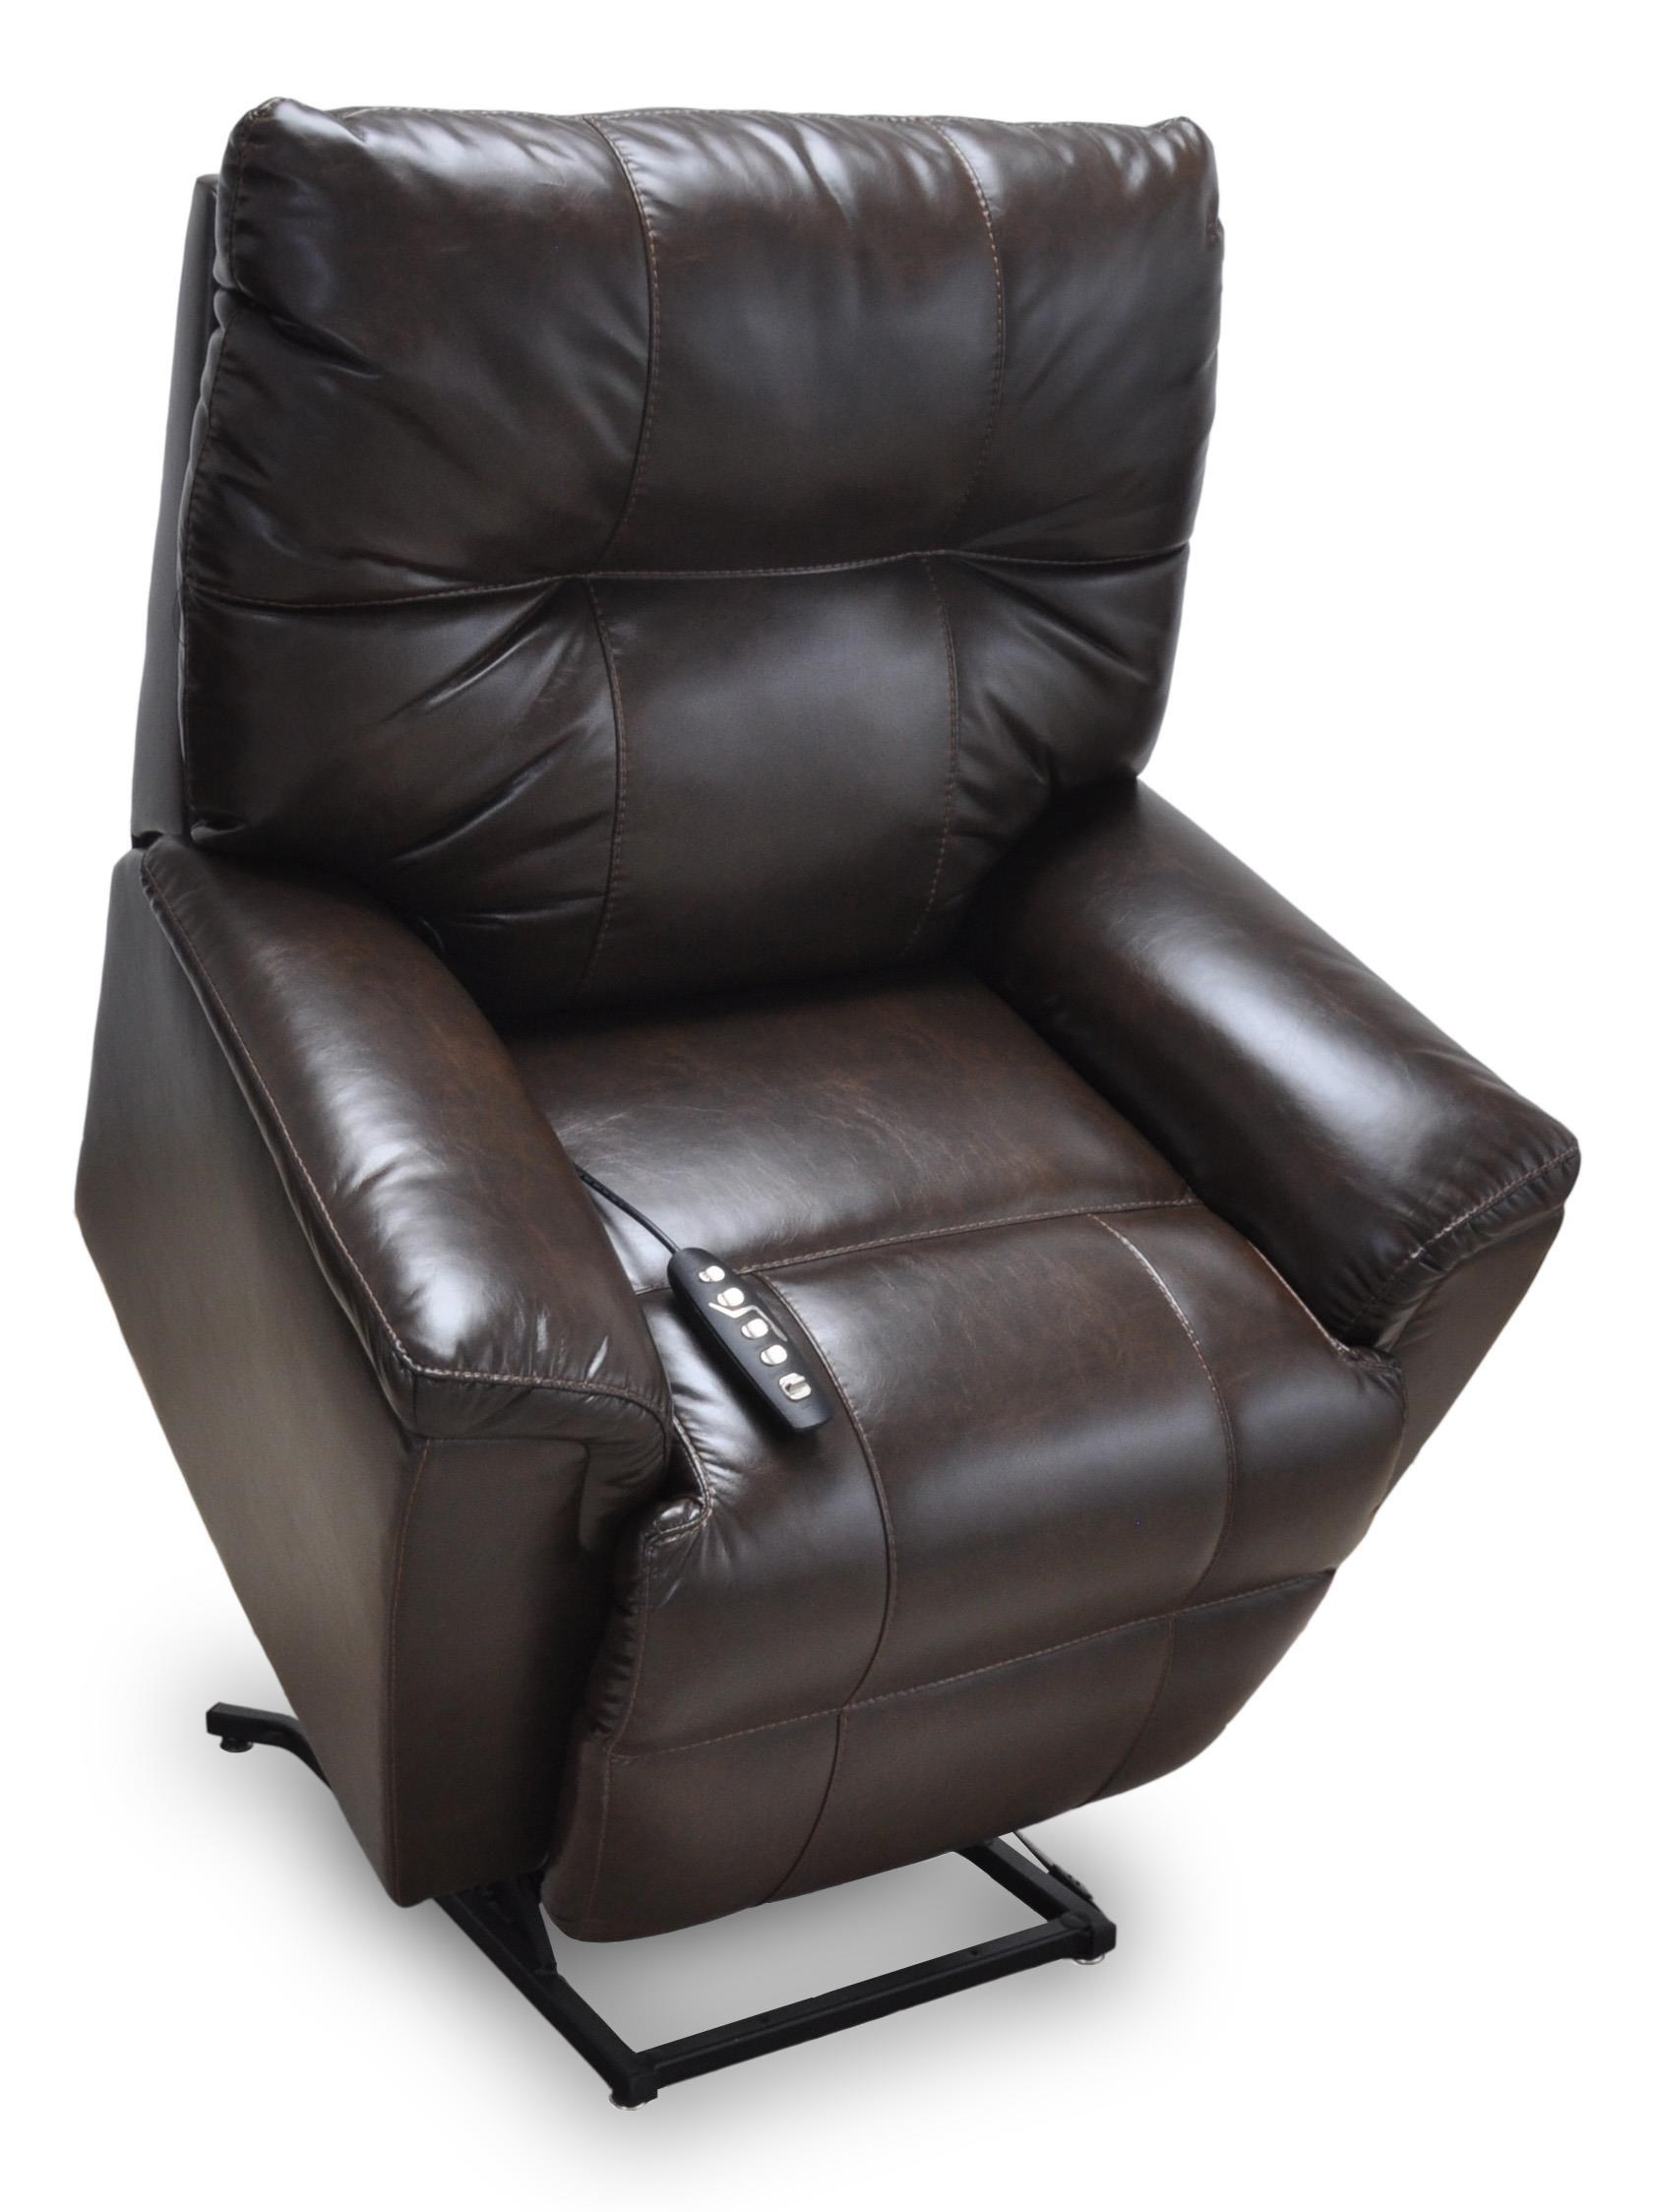 Franklin Lift and Power Recliners Finn Power Lay Flat Lift Chair with Massage \u0026 Power Headrest - Great American Home Store - Lift Recliner  sc 1 st  Great American Home Store & Franklin Lift and Power Recliners Finn Power Lay Flat Lift Chair ... islam-shia.org